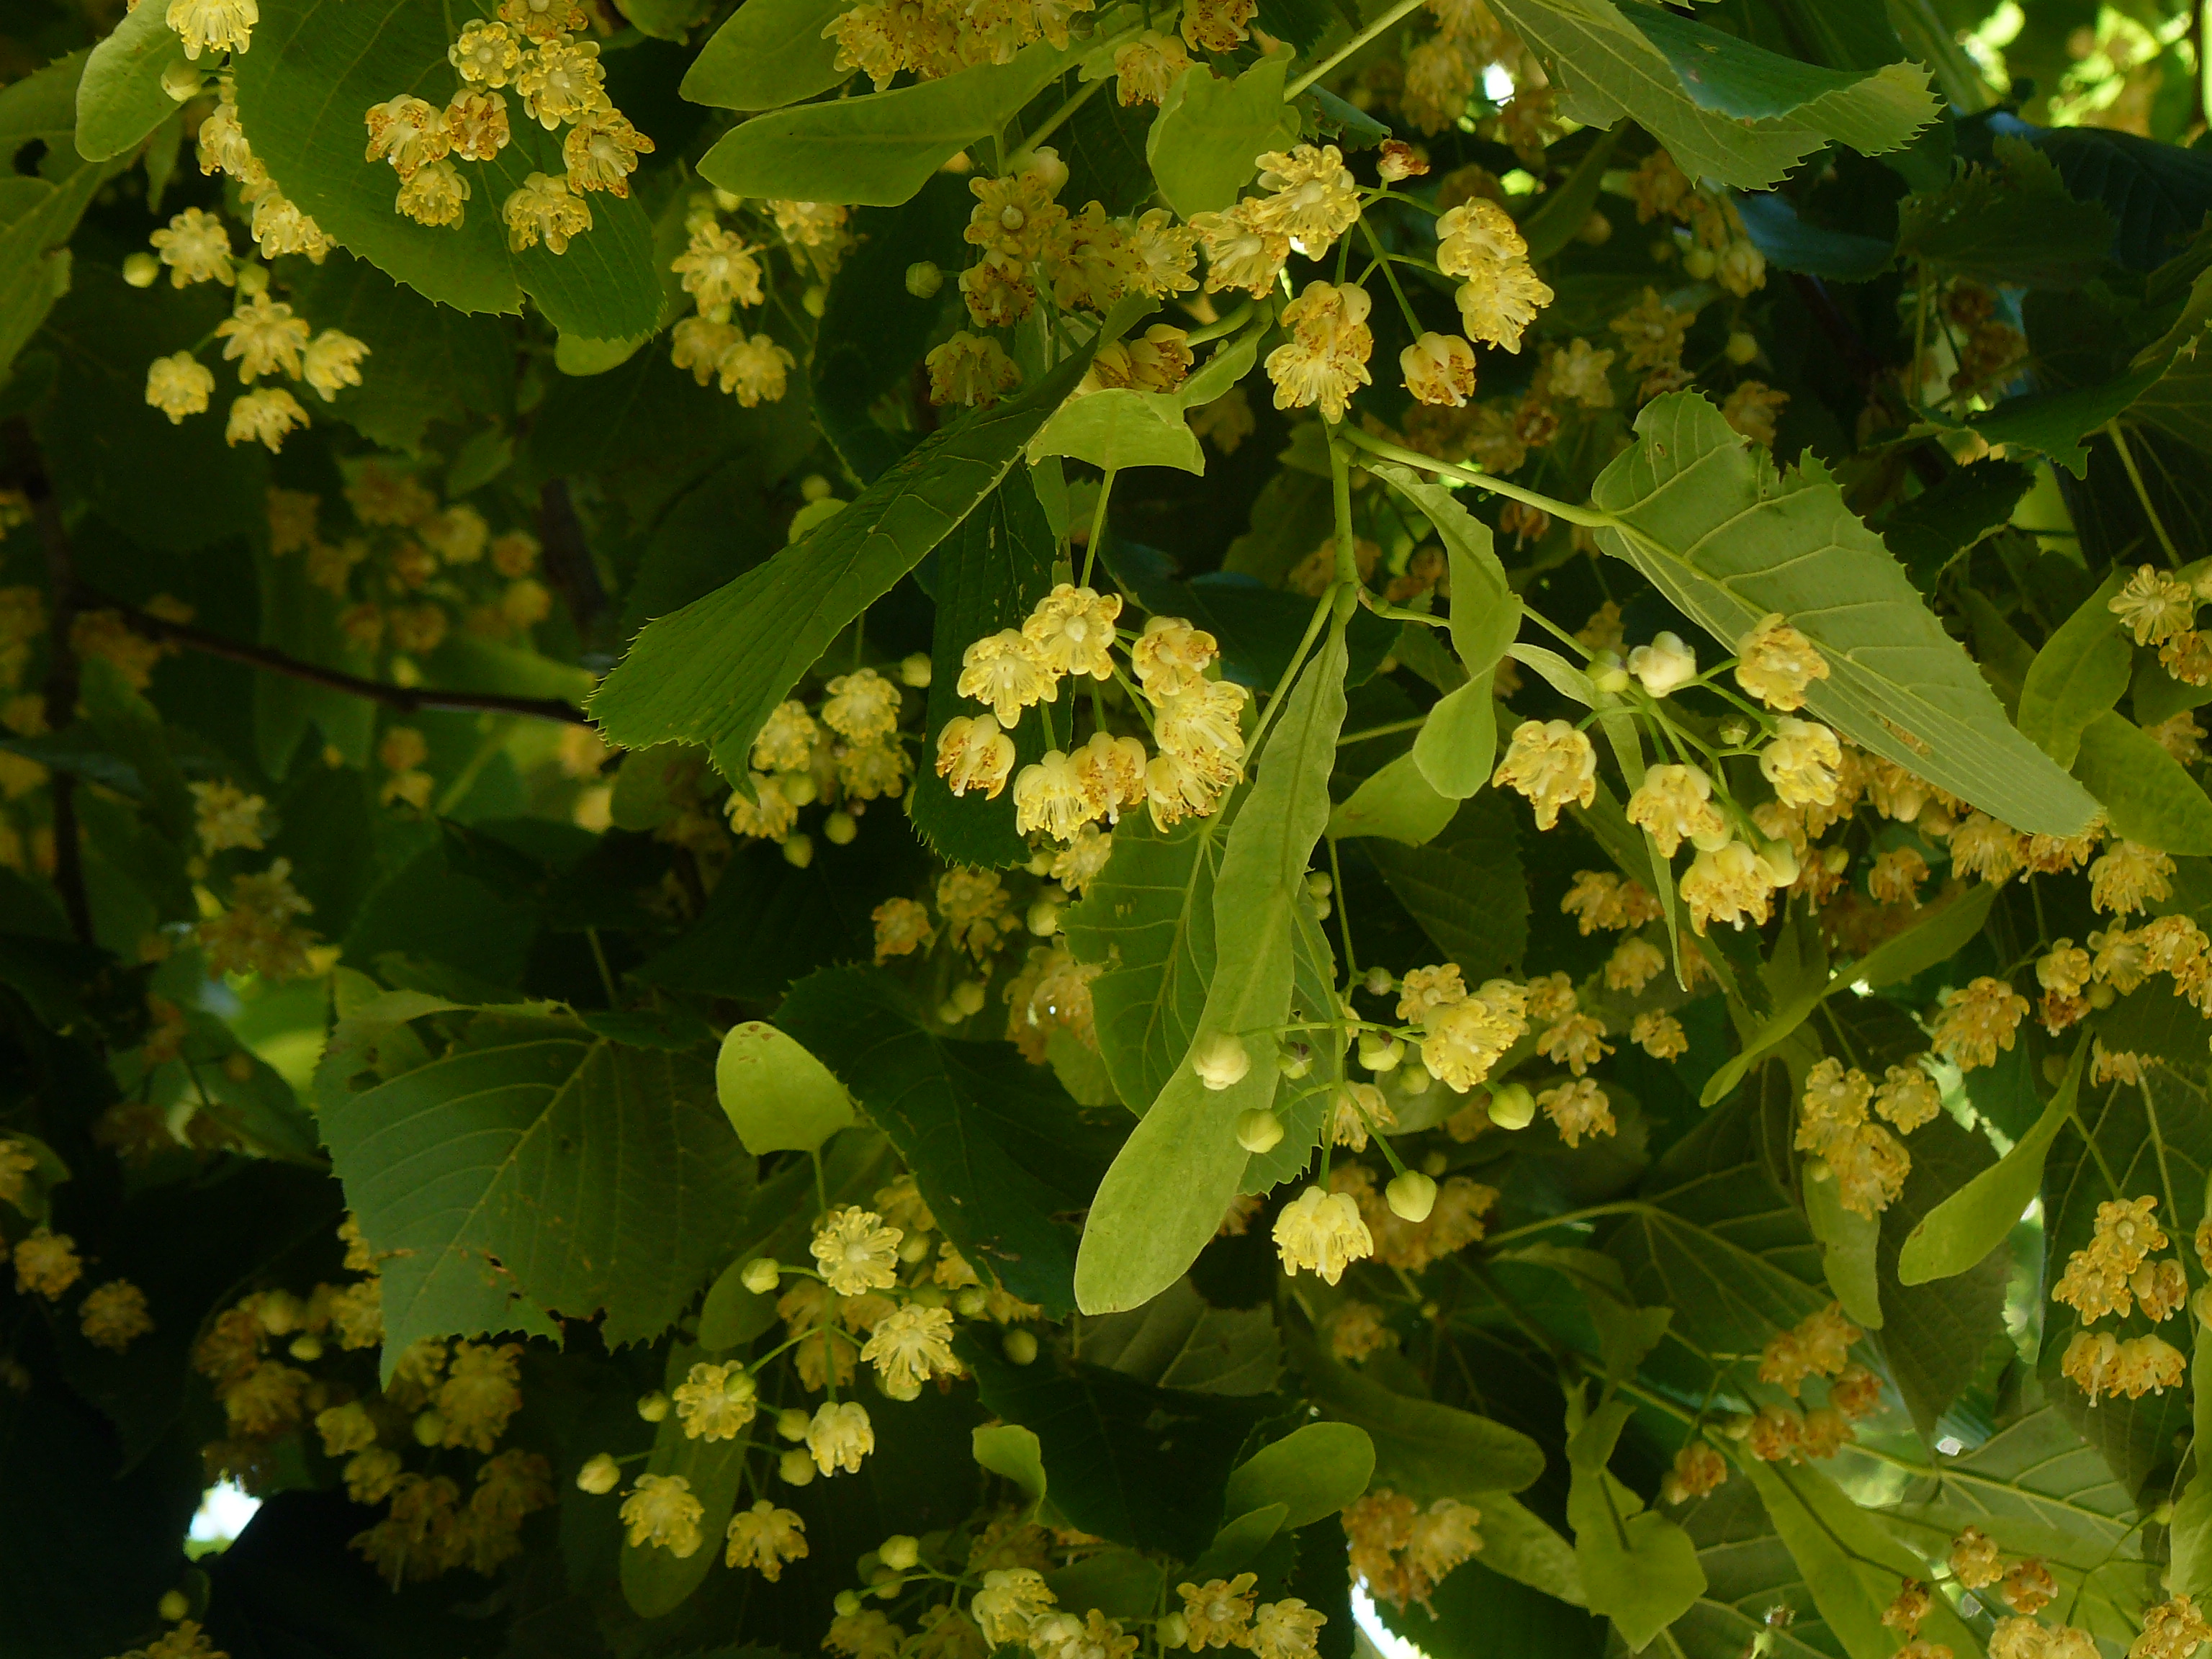 Creamy white, sweetly scented flowers of the Linden, a popular shade tree (Tilia spp.), with leaves and seed.